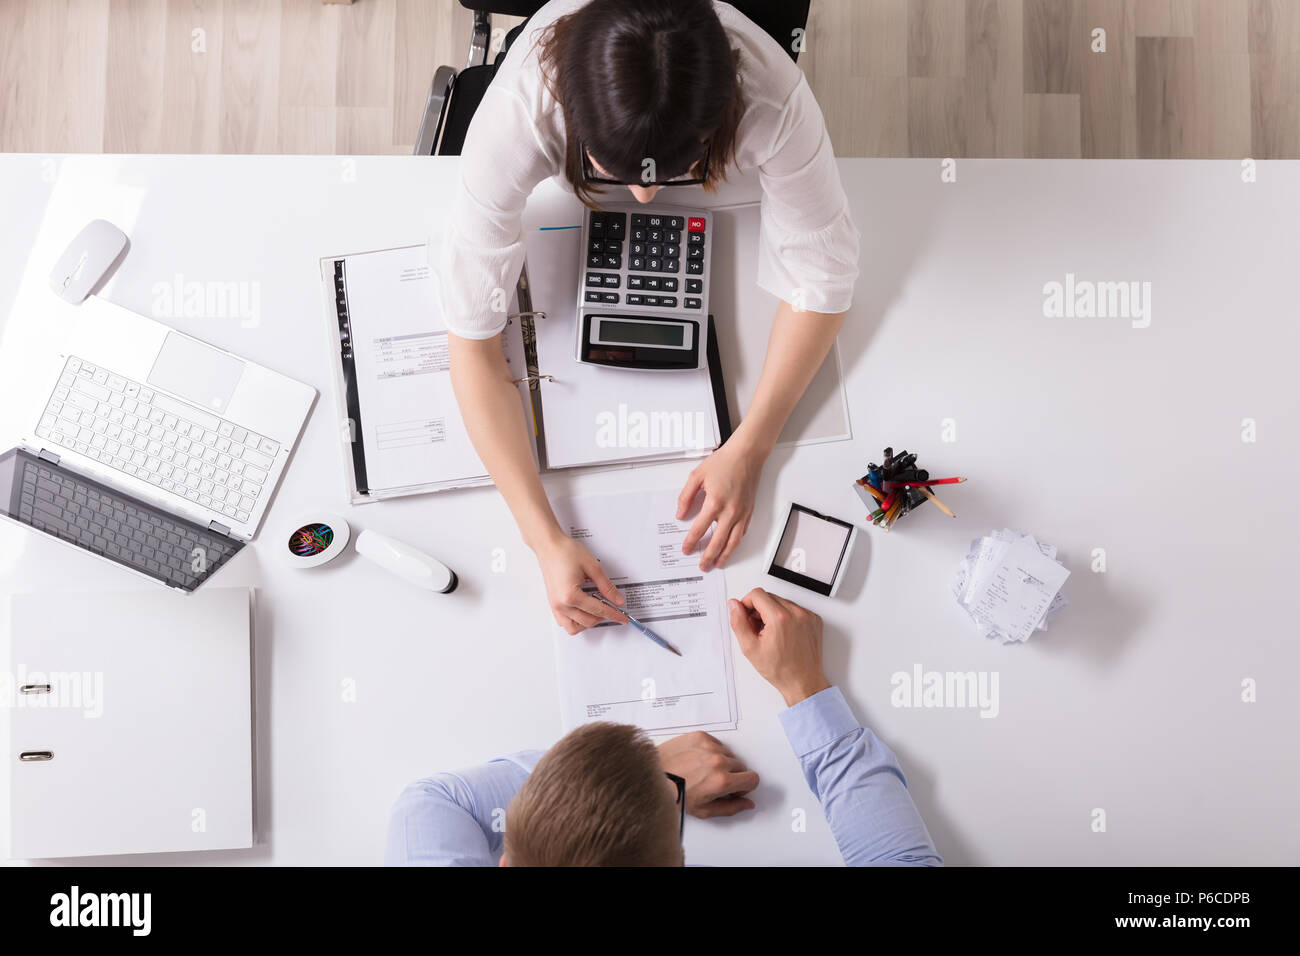 High Angle View Of Two Businesspeople Analyzing Bill In Office Stock Photo